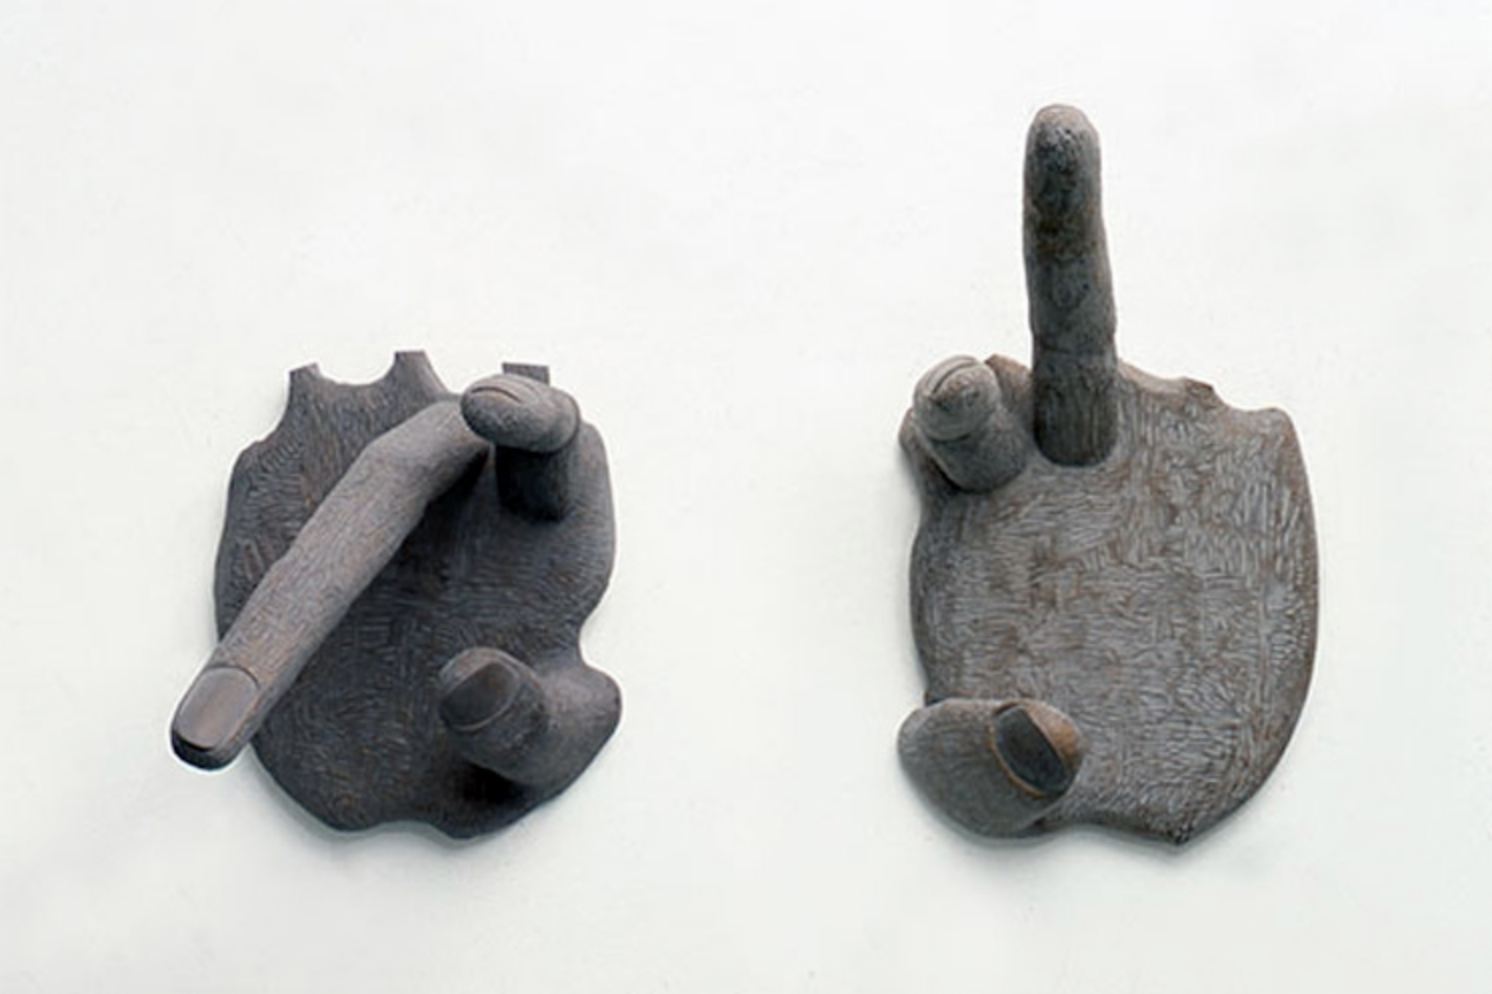 Two hands 2001 - 57 x 49 x 61cm and 73 x 47 x 56 cm limewood